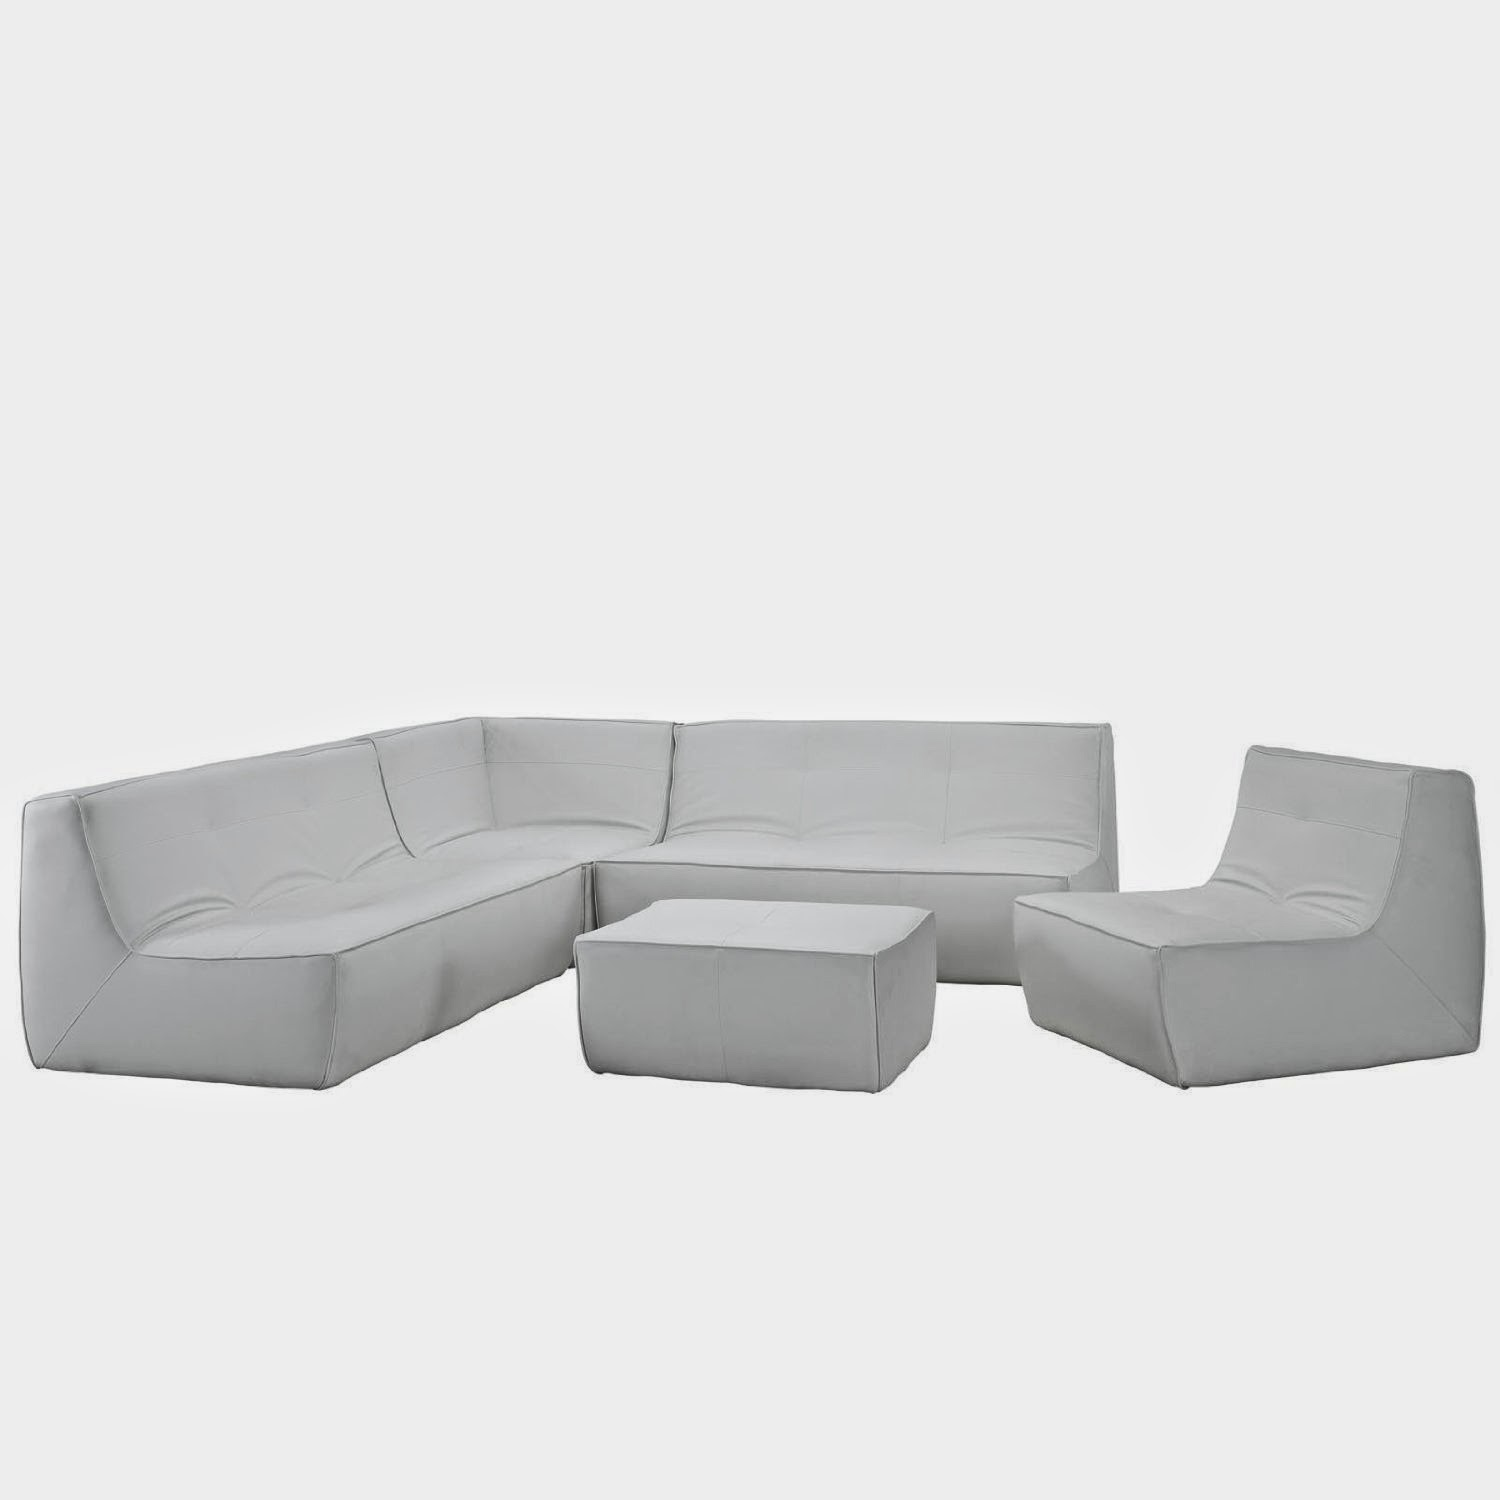 Miraculous Modern Leather Reclining Couch Sofa And Loveseat Sets On Sale Uwap Interior Chair Design Uwaporg